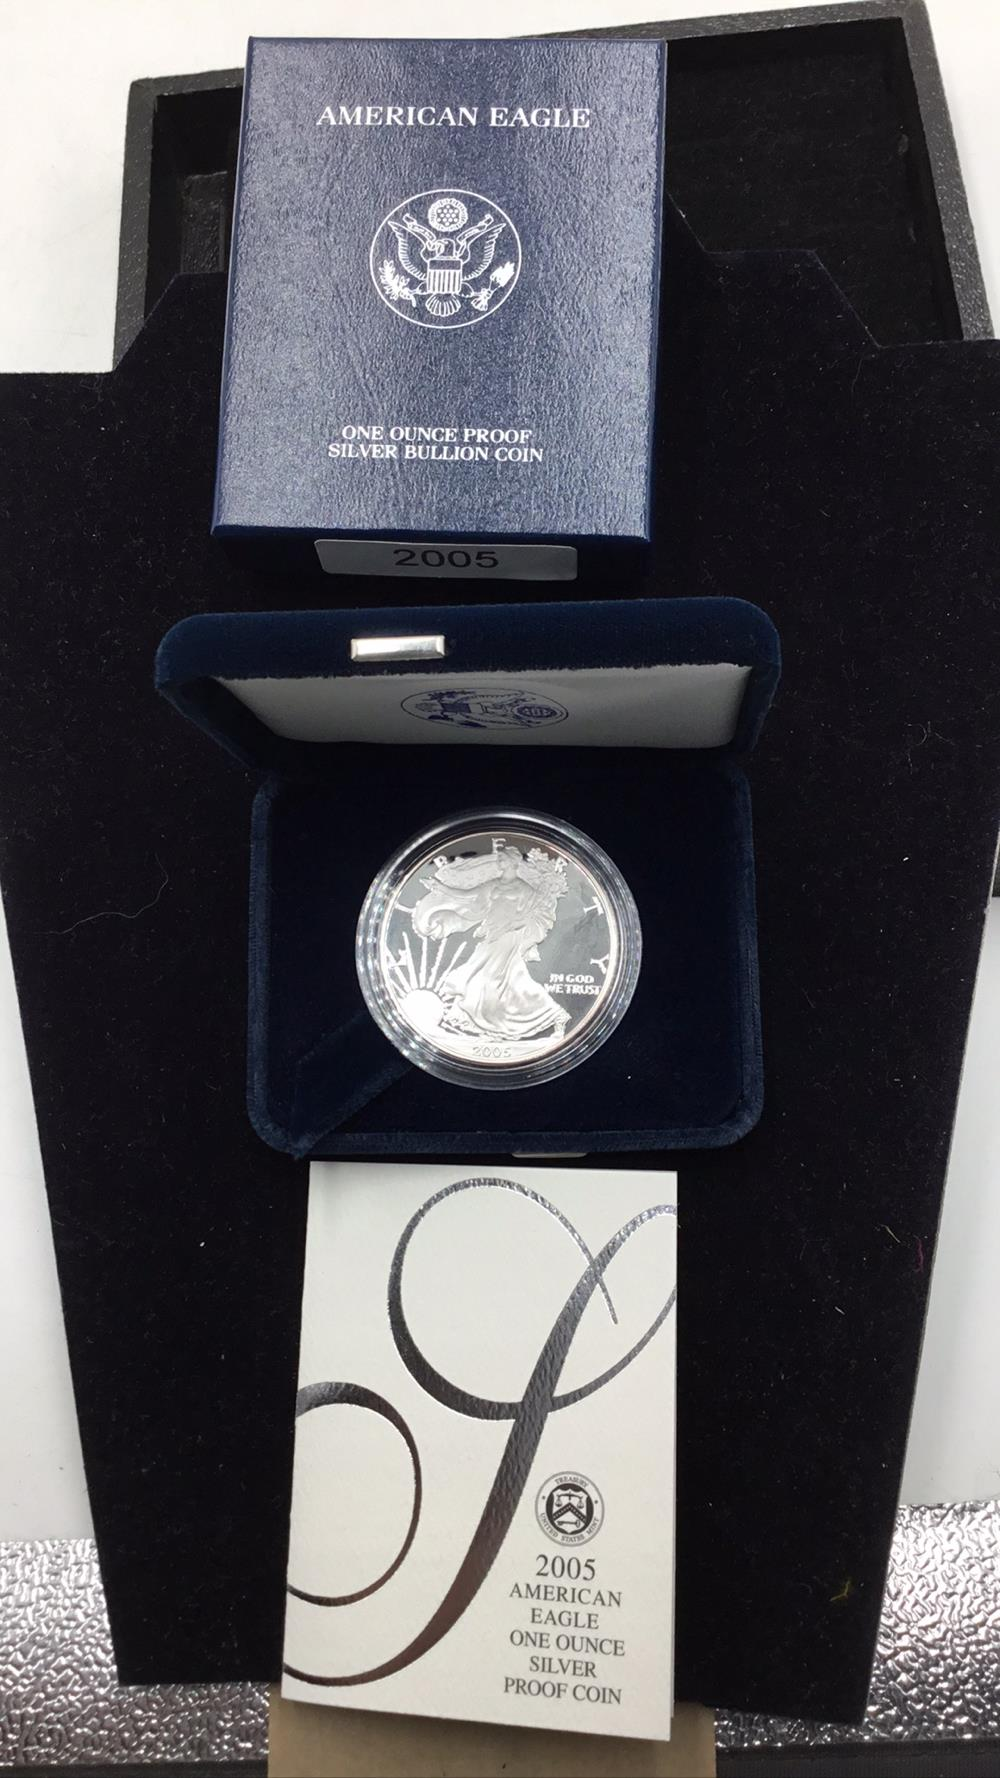 United states mint American eagle 1 ounce silver